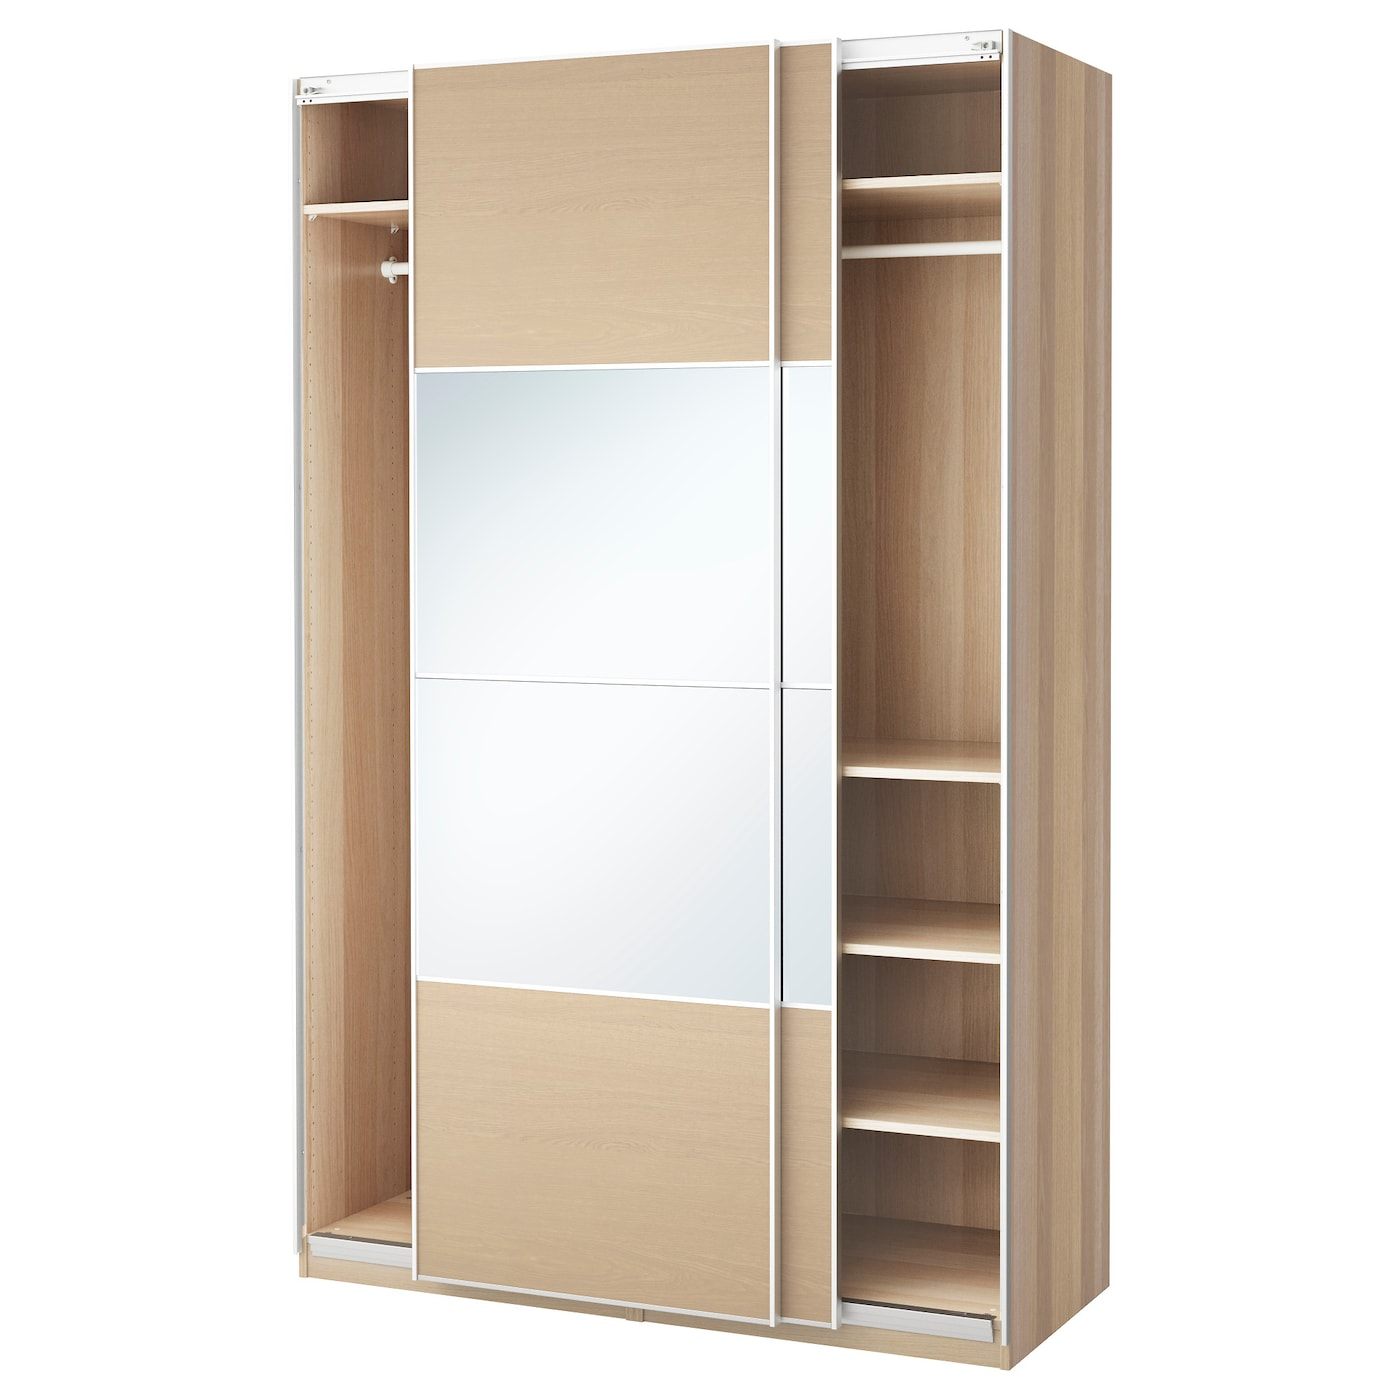 Pax wardrobe white stained oak effect auli ilseng 150 x 66 x 236 cm ikea for Creation armoire ikea